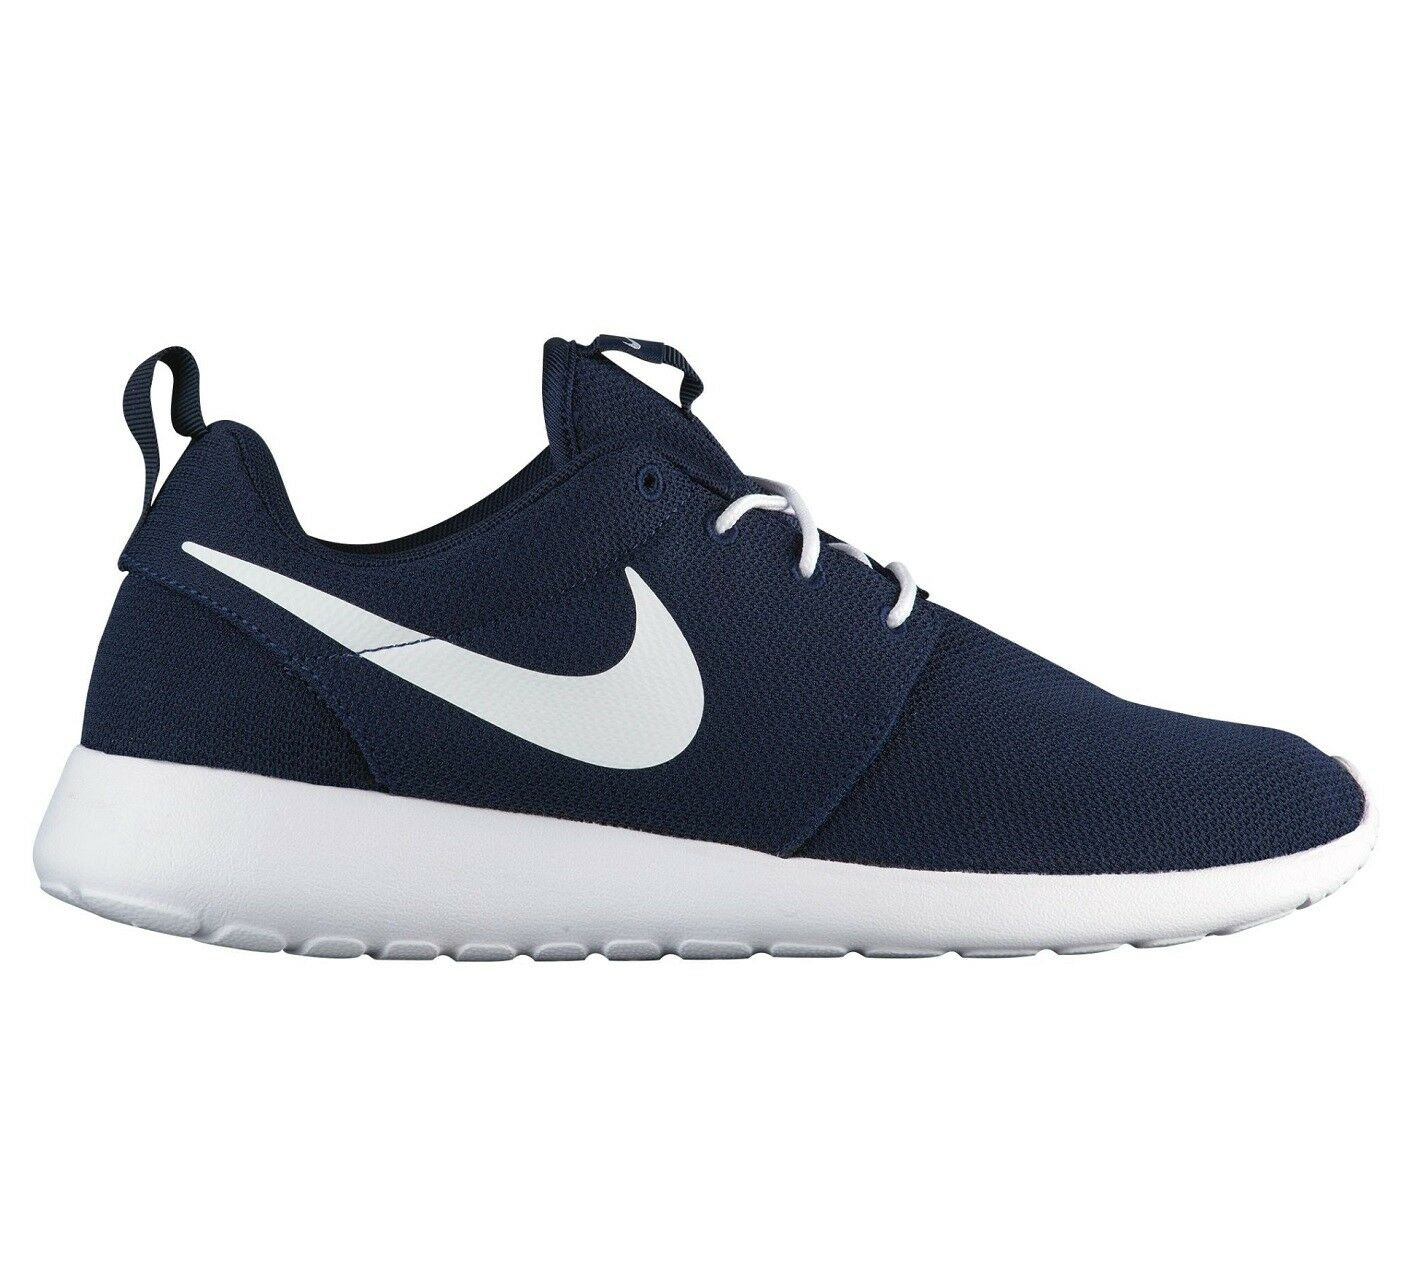 Nike Roshe One White Mens 511881-423 Obsidian Blue White One Mesh Running Shoes Size 11 18002c